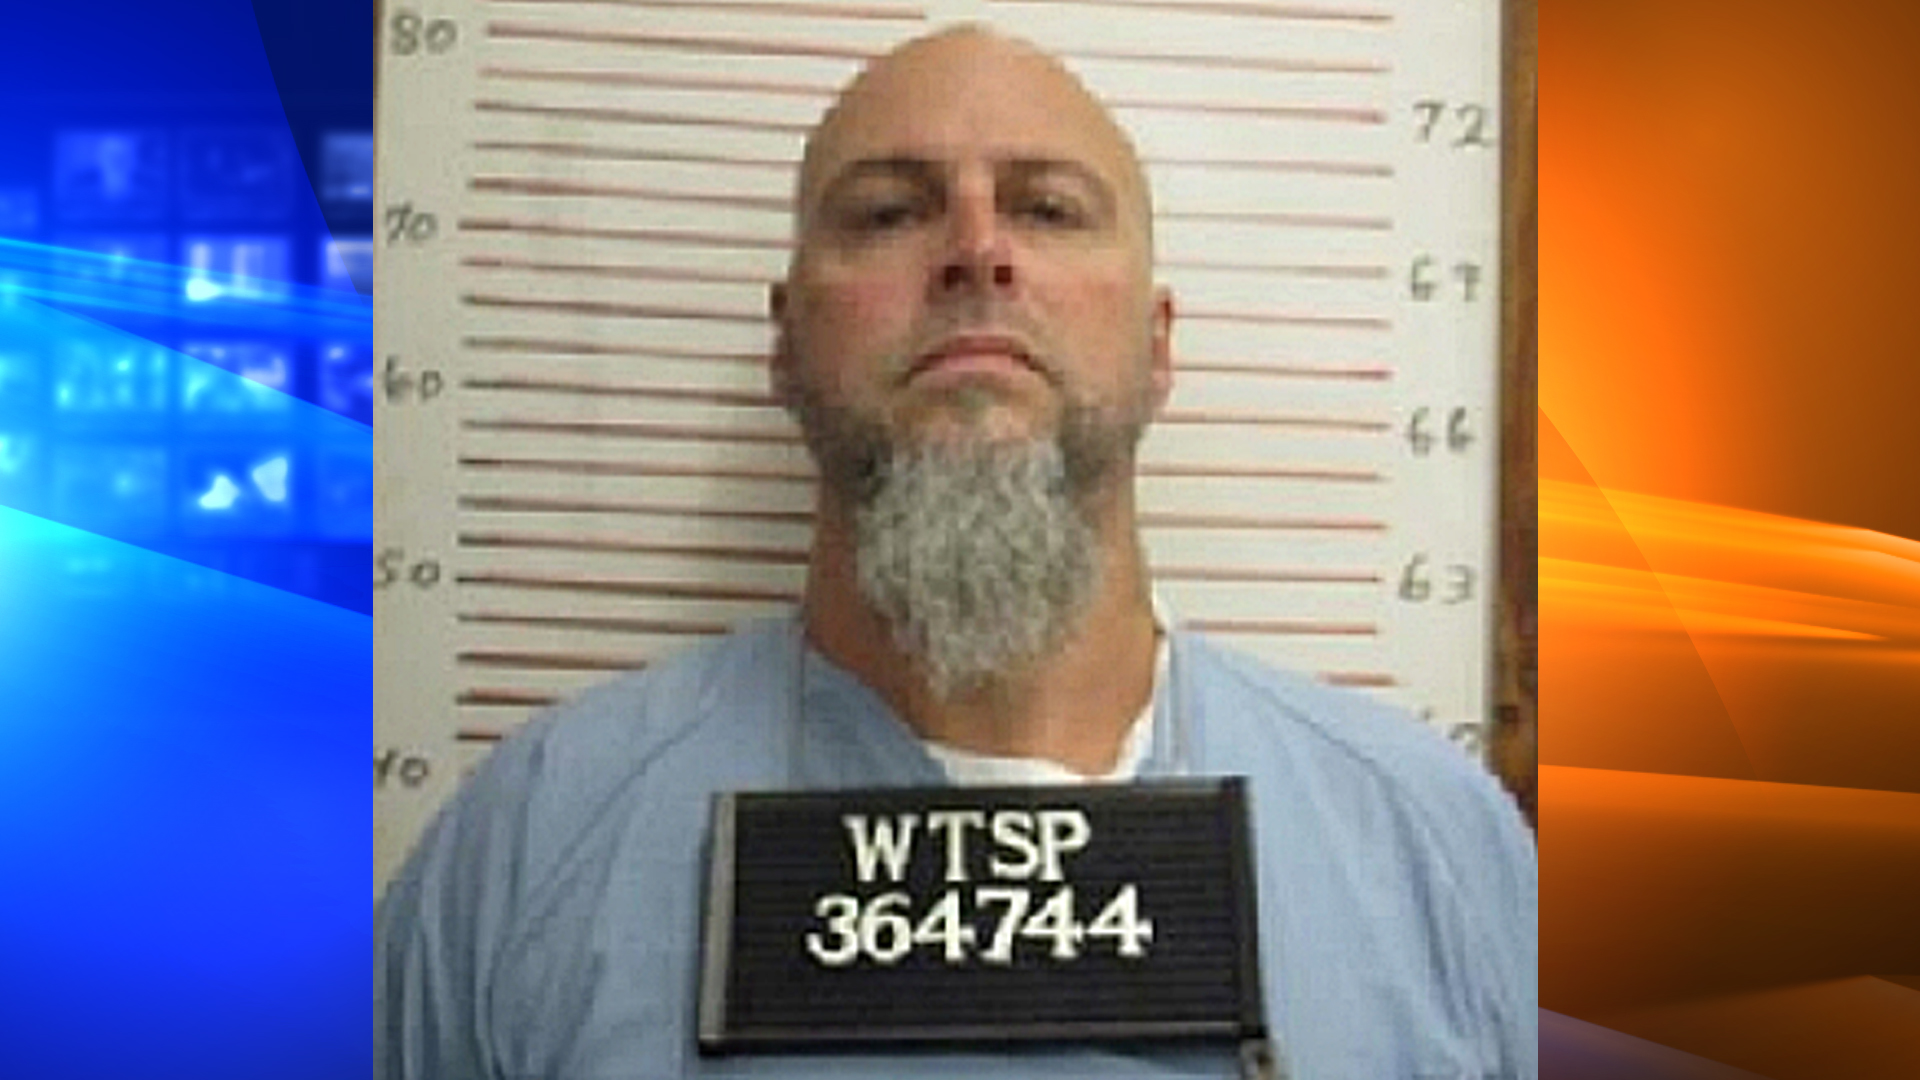 The Tennessee Bureau of Investigation added Curtis Ray Watson to its Most Wanted list. (Credit: Tennessee Bureau of Investigation)